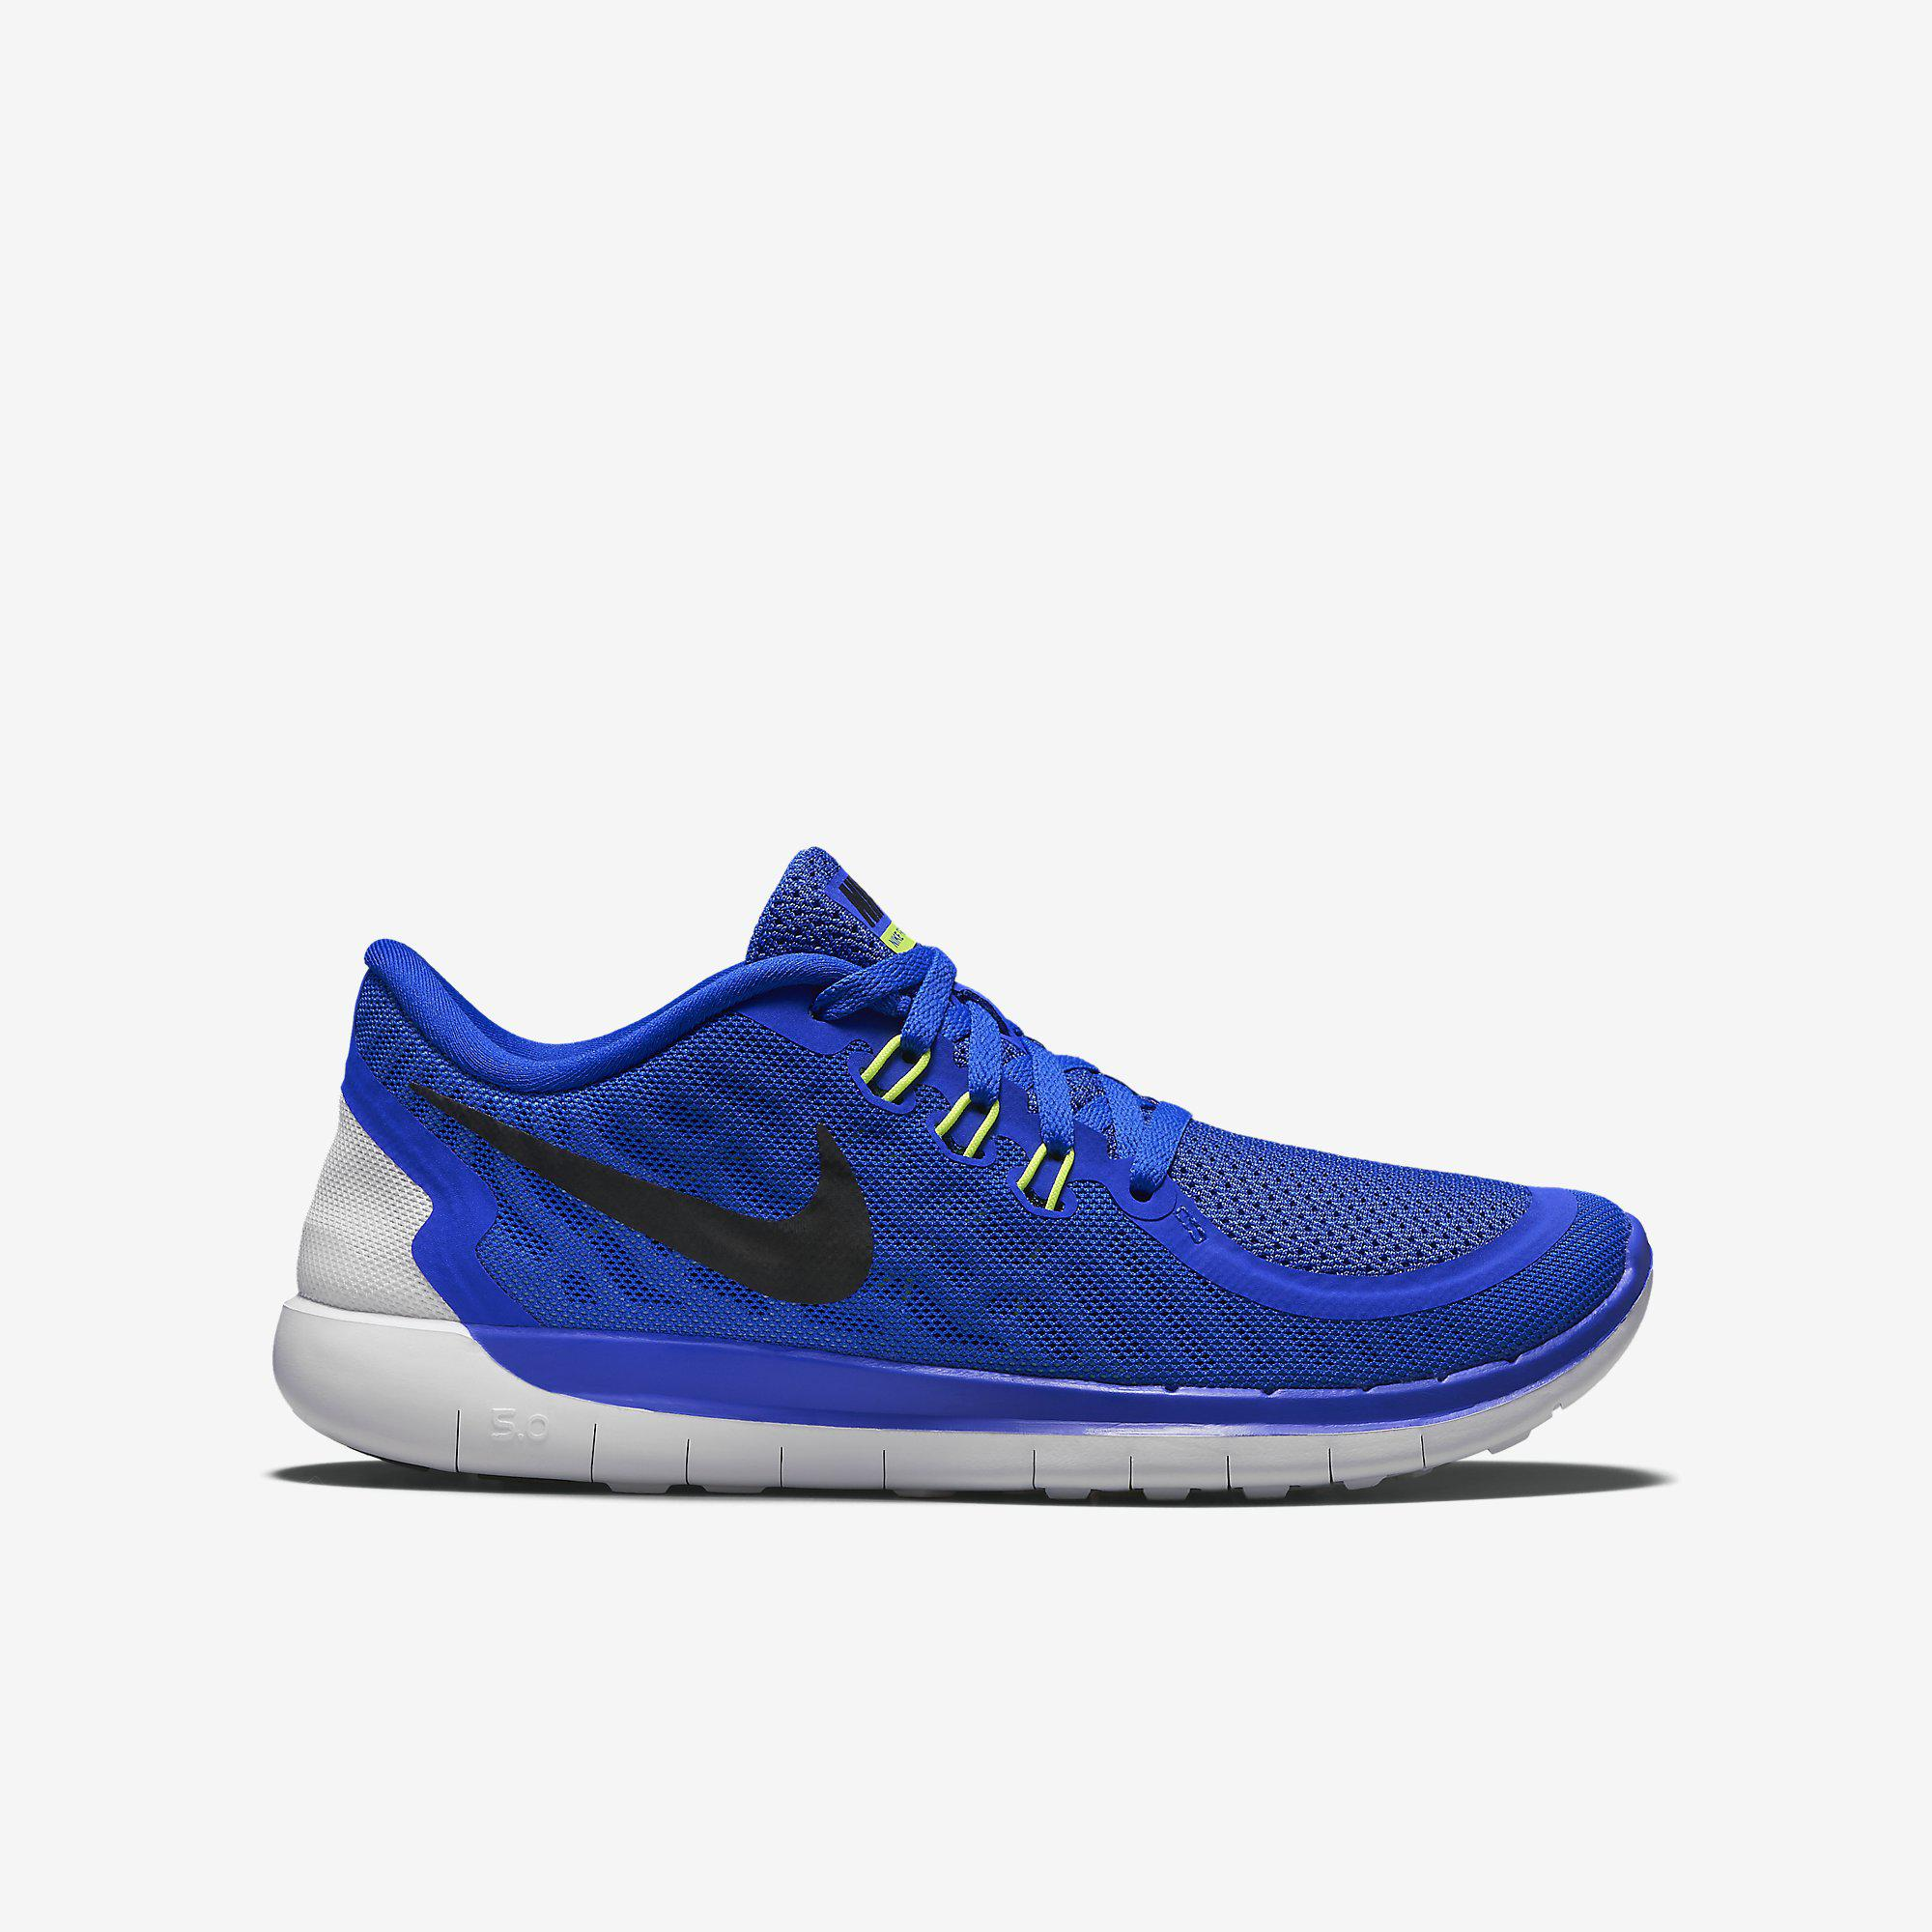 8315fa549de8 Nike Boys Free 5.0+ Running Shoes - Game Royal - Tennisnuts.com